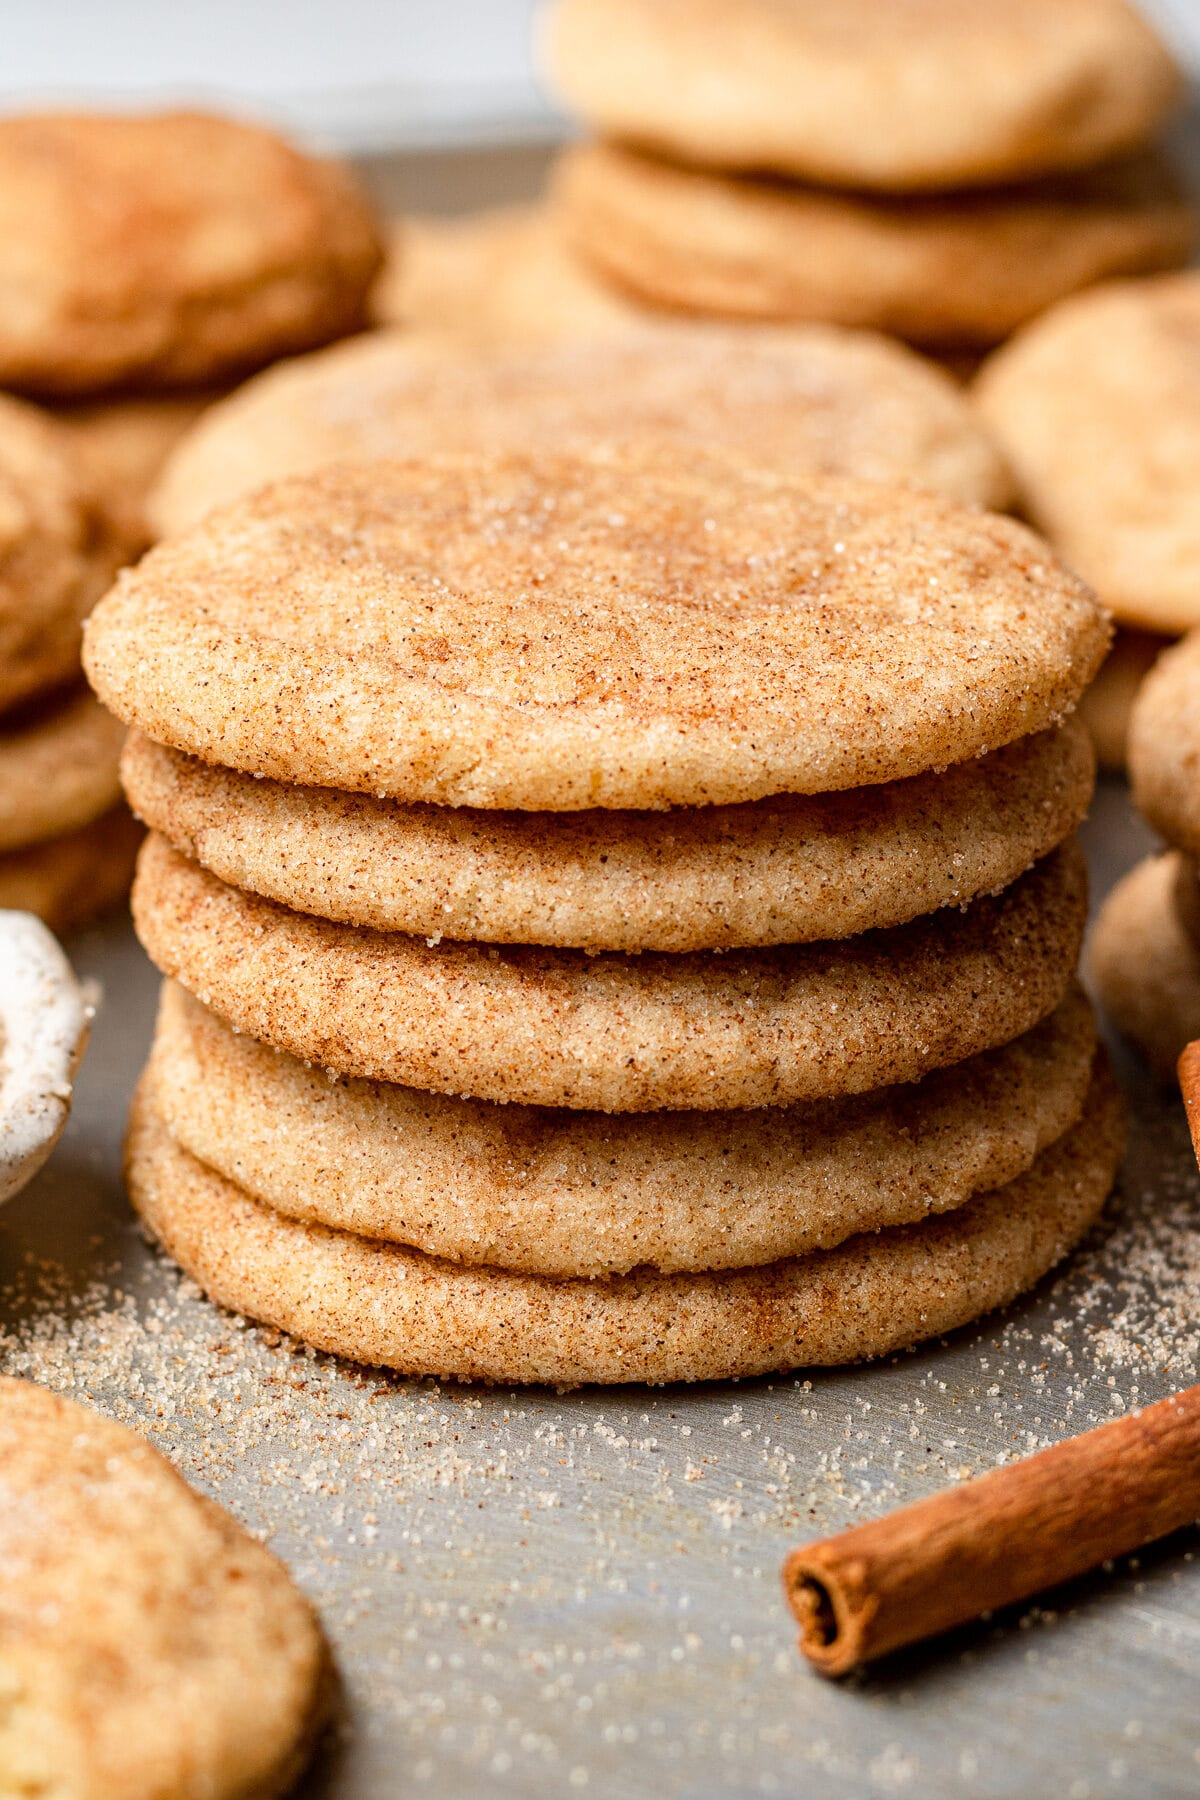 snickerdoodle cookies without cream of tartar stacked on top of each other with a cinnamon stick in the foreground